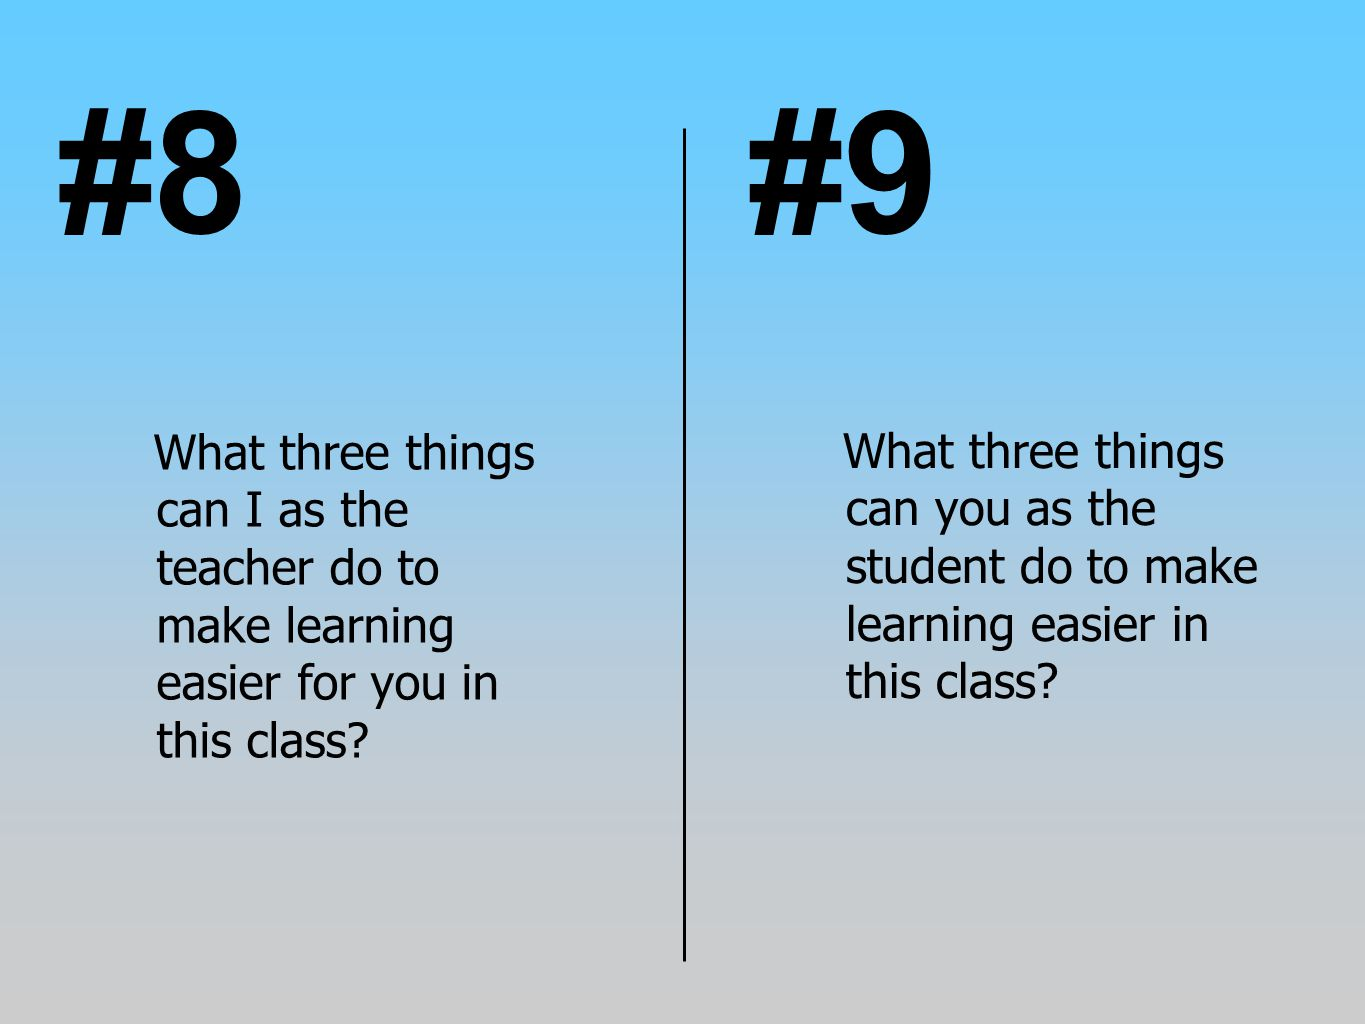 #8 #9. What three things can I as the teacher do to make learning easier for you in this class